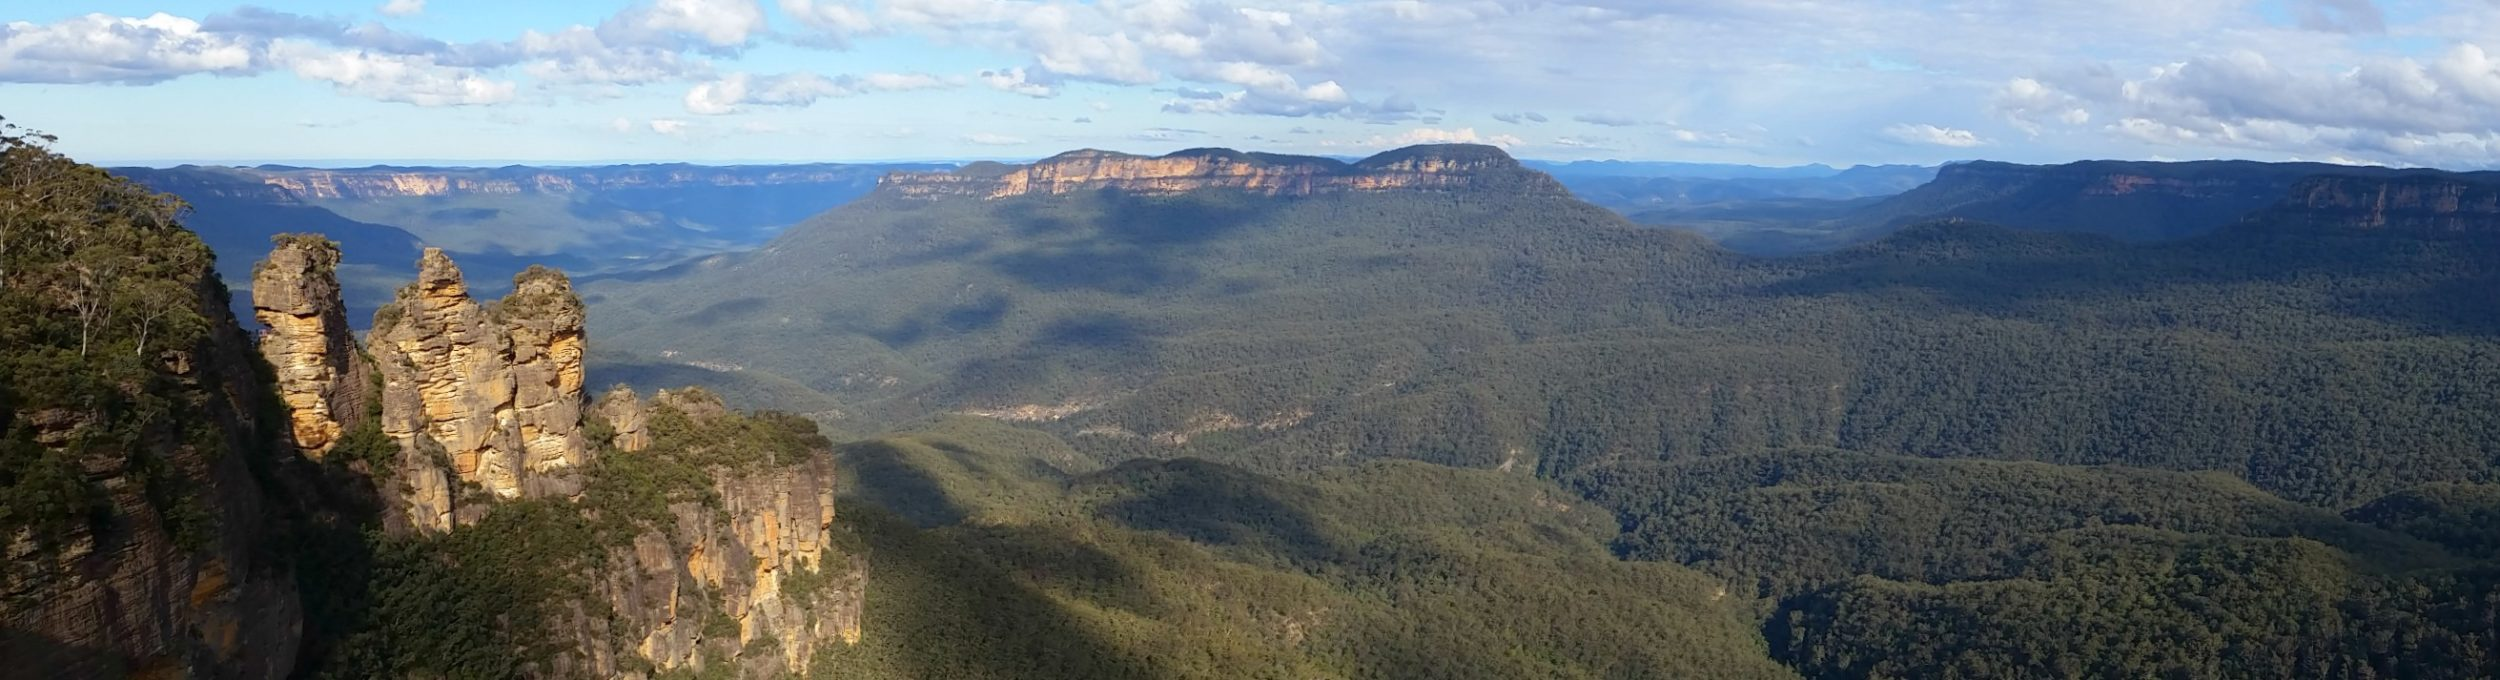 Panoramic View from Echo Point Katoomba in the Blue Mountains Australia